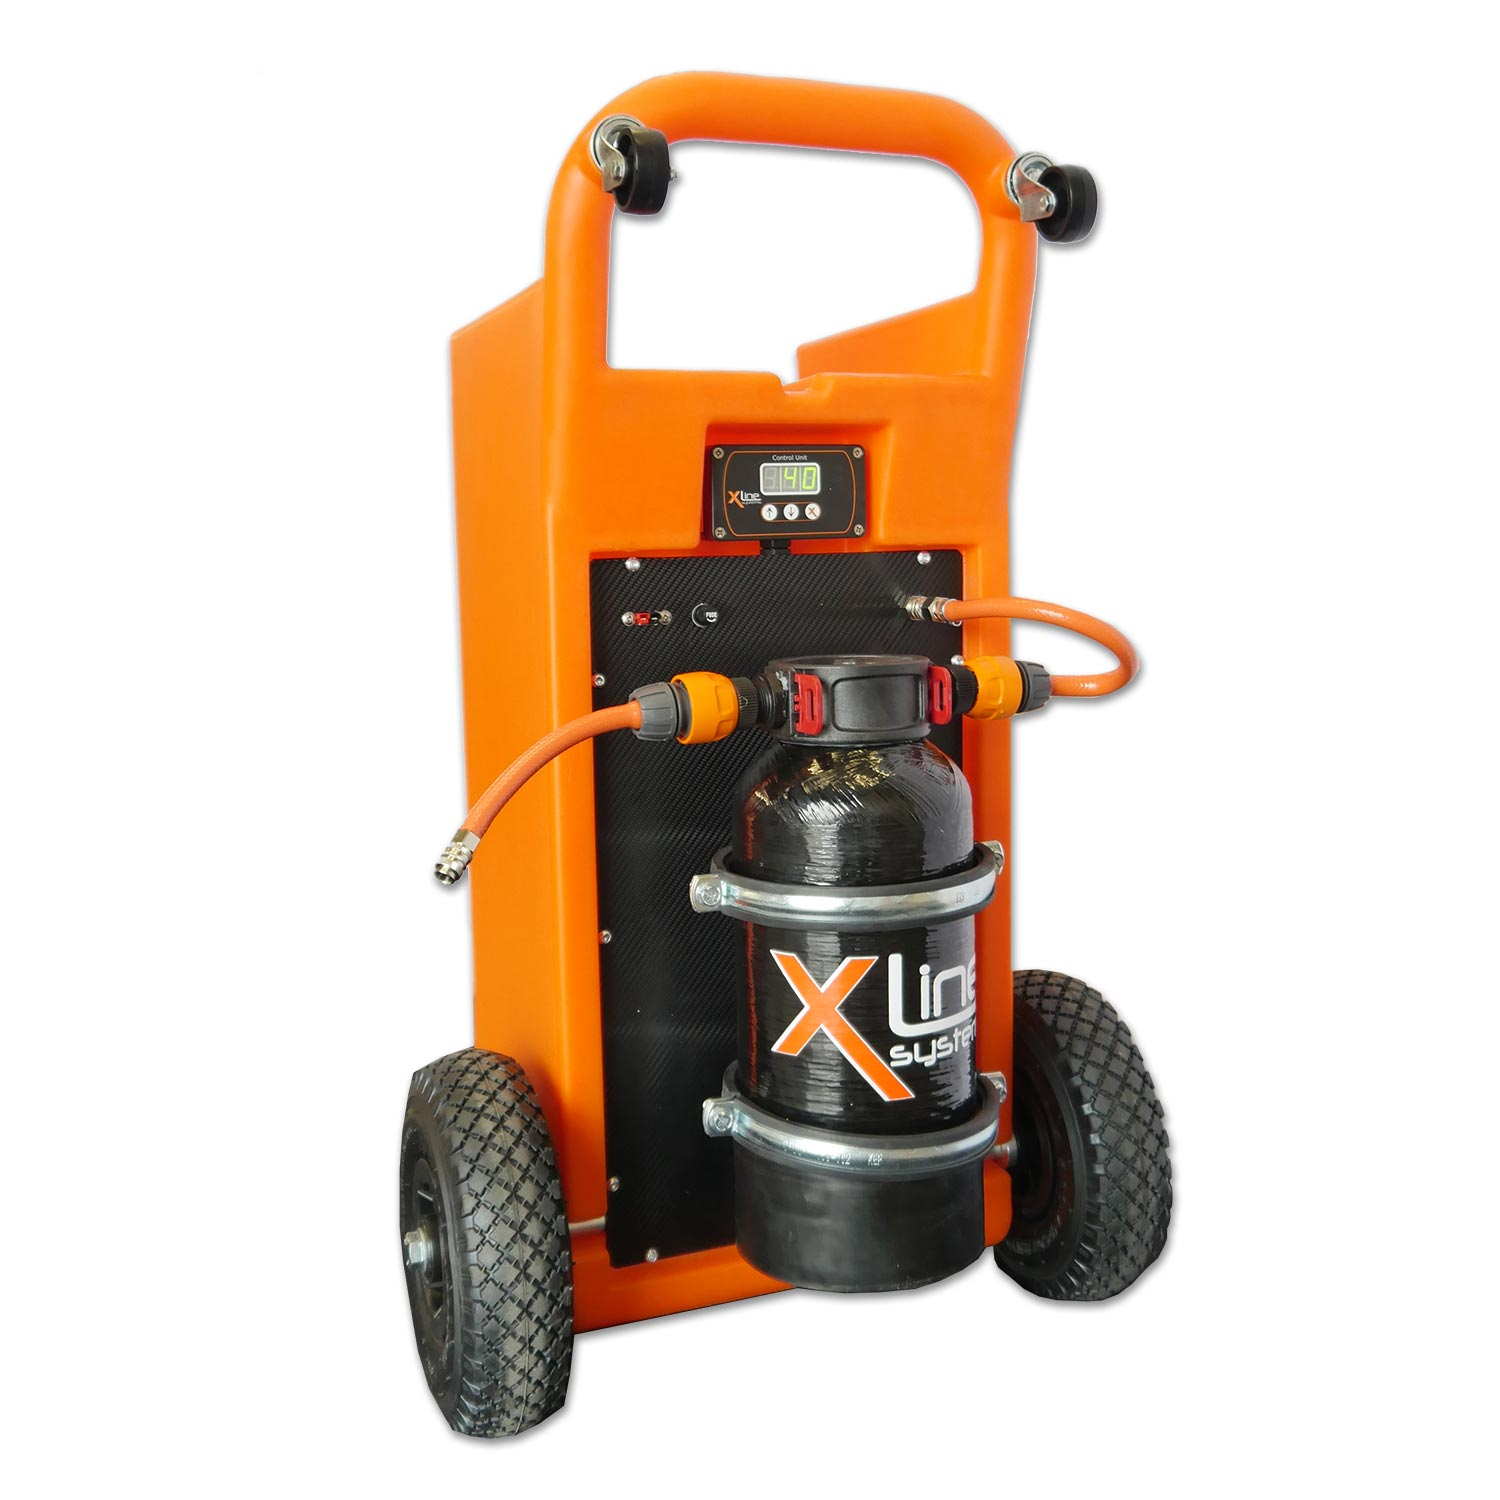 45ltr Portable Trolley with 4ltr D/I Resin Vessel